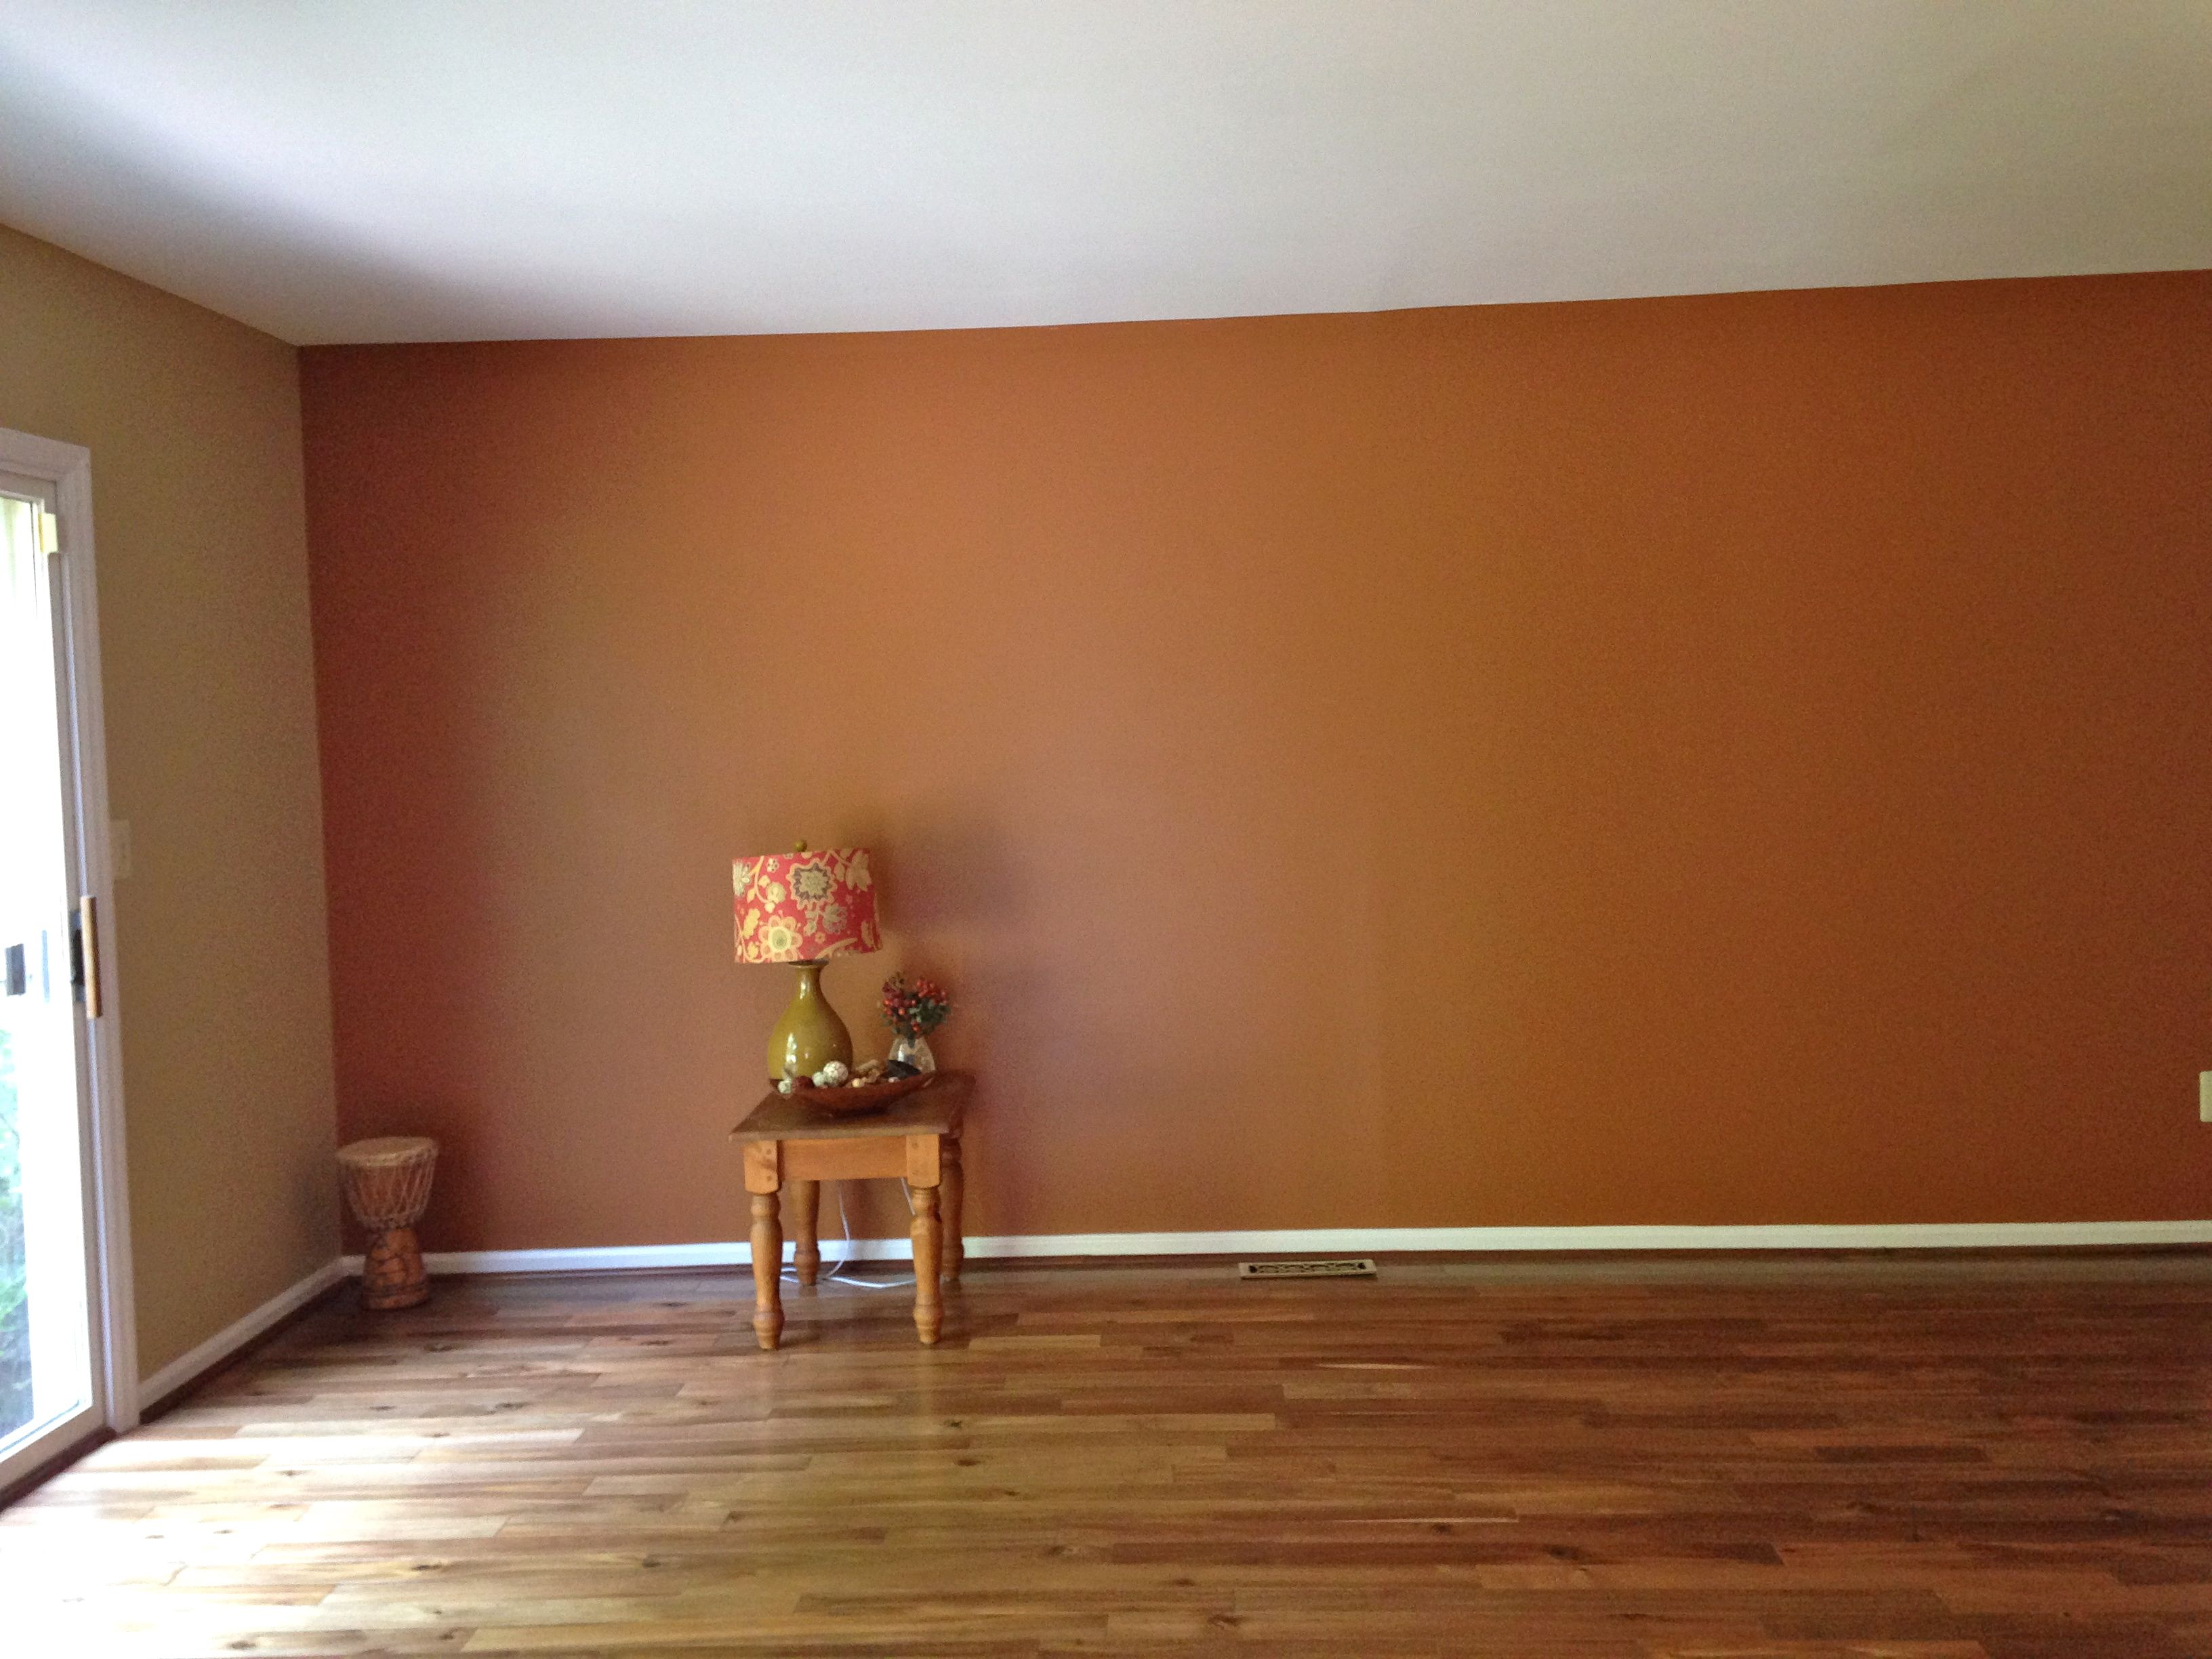 Bedroom paint ideas accent wall orange - Family Room Sherwin Williams Accent Wall Brandywine Opposite Walls Bittersweet Stem